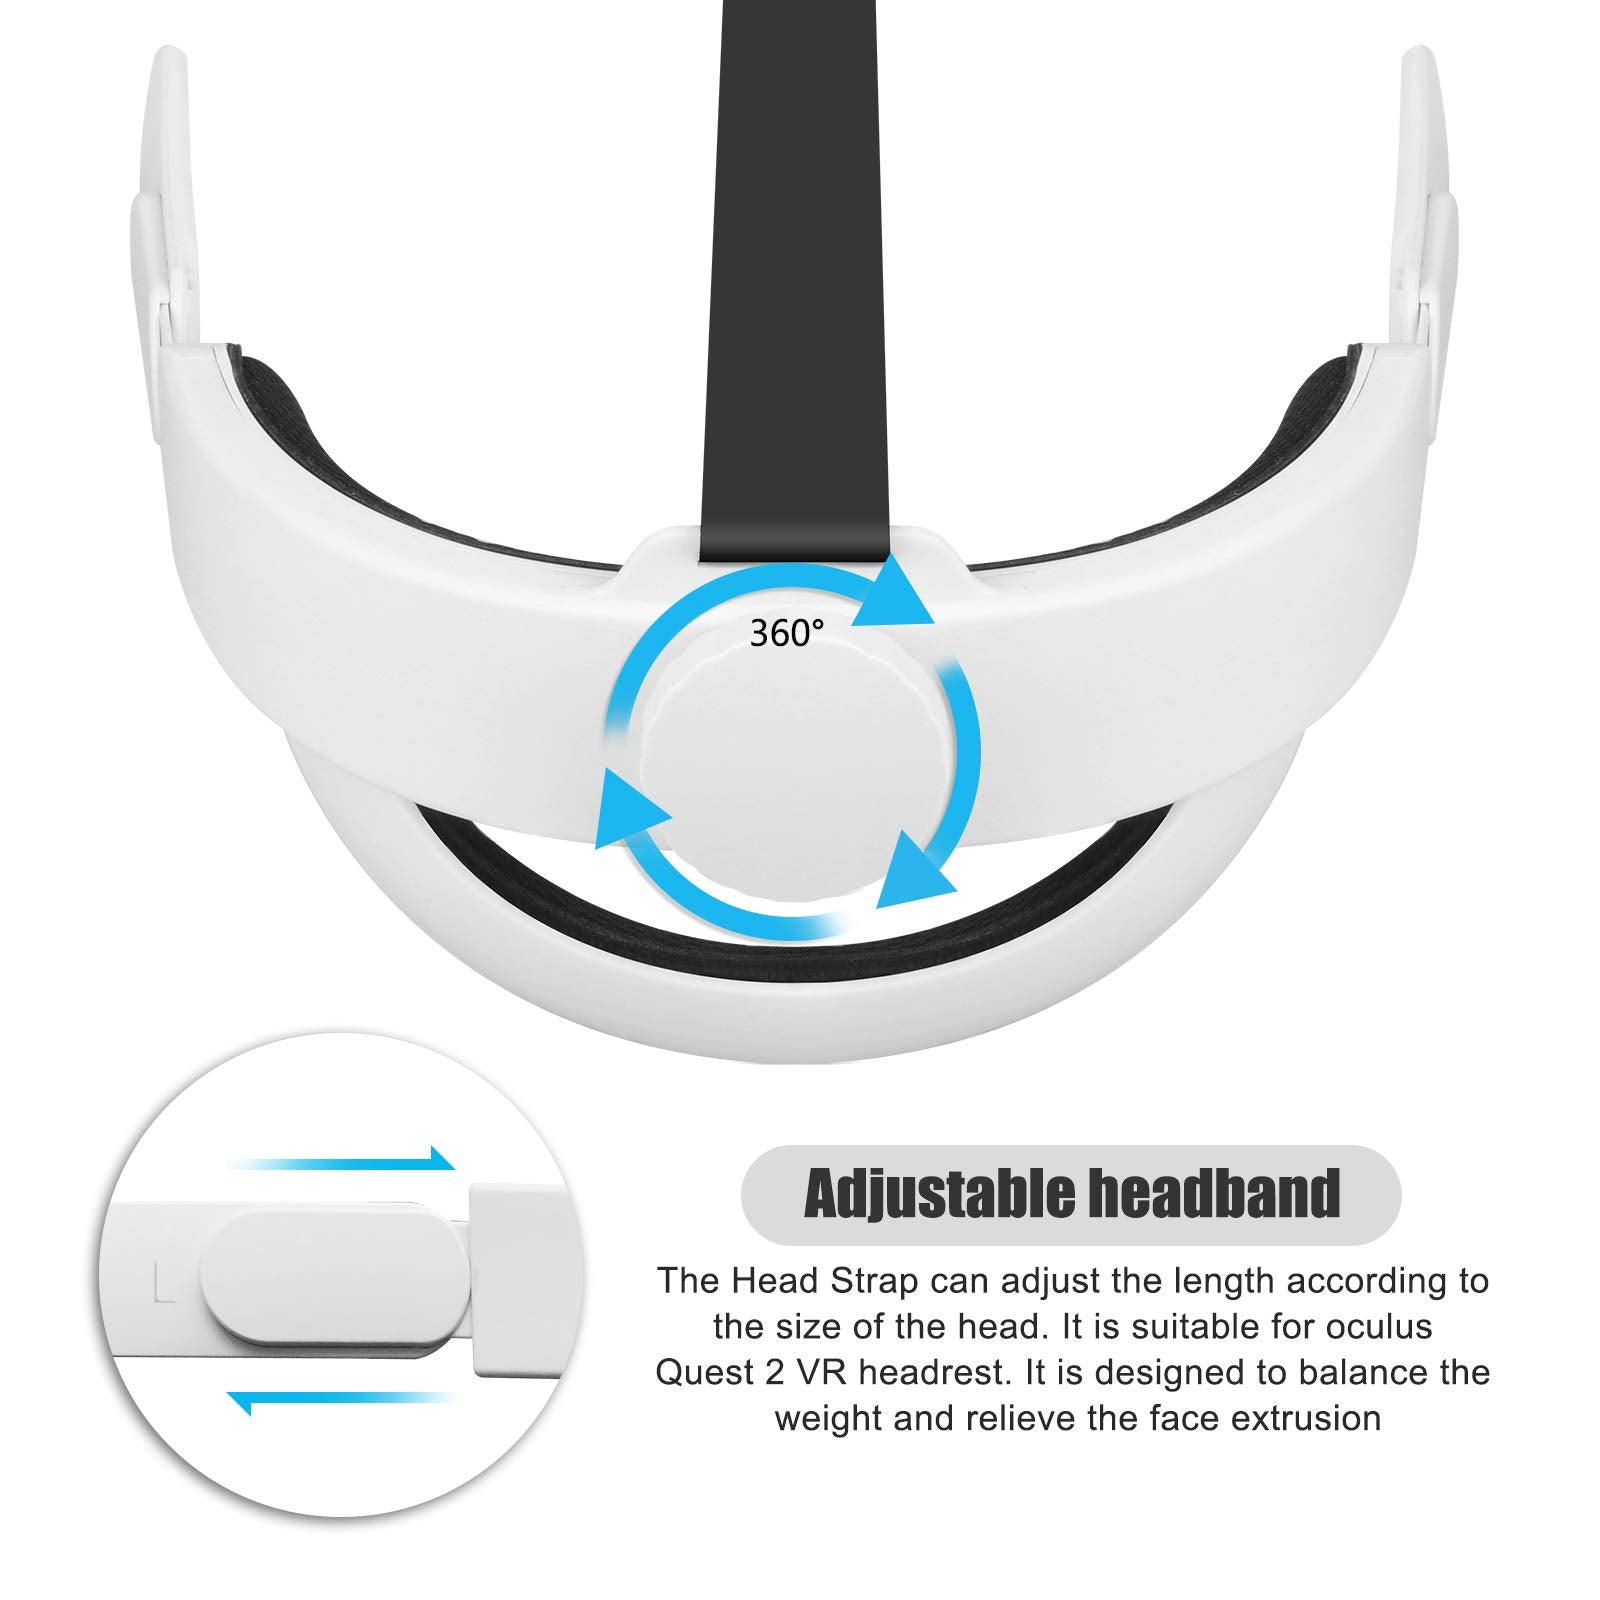 Adjustable Head Strap for Oculus Quest 2,Replace VR Headset Headband,Comfortable Foam Pad Strap,Design Balance Weight,Relieve Face Squeeze